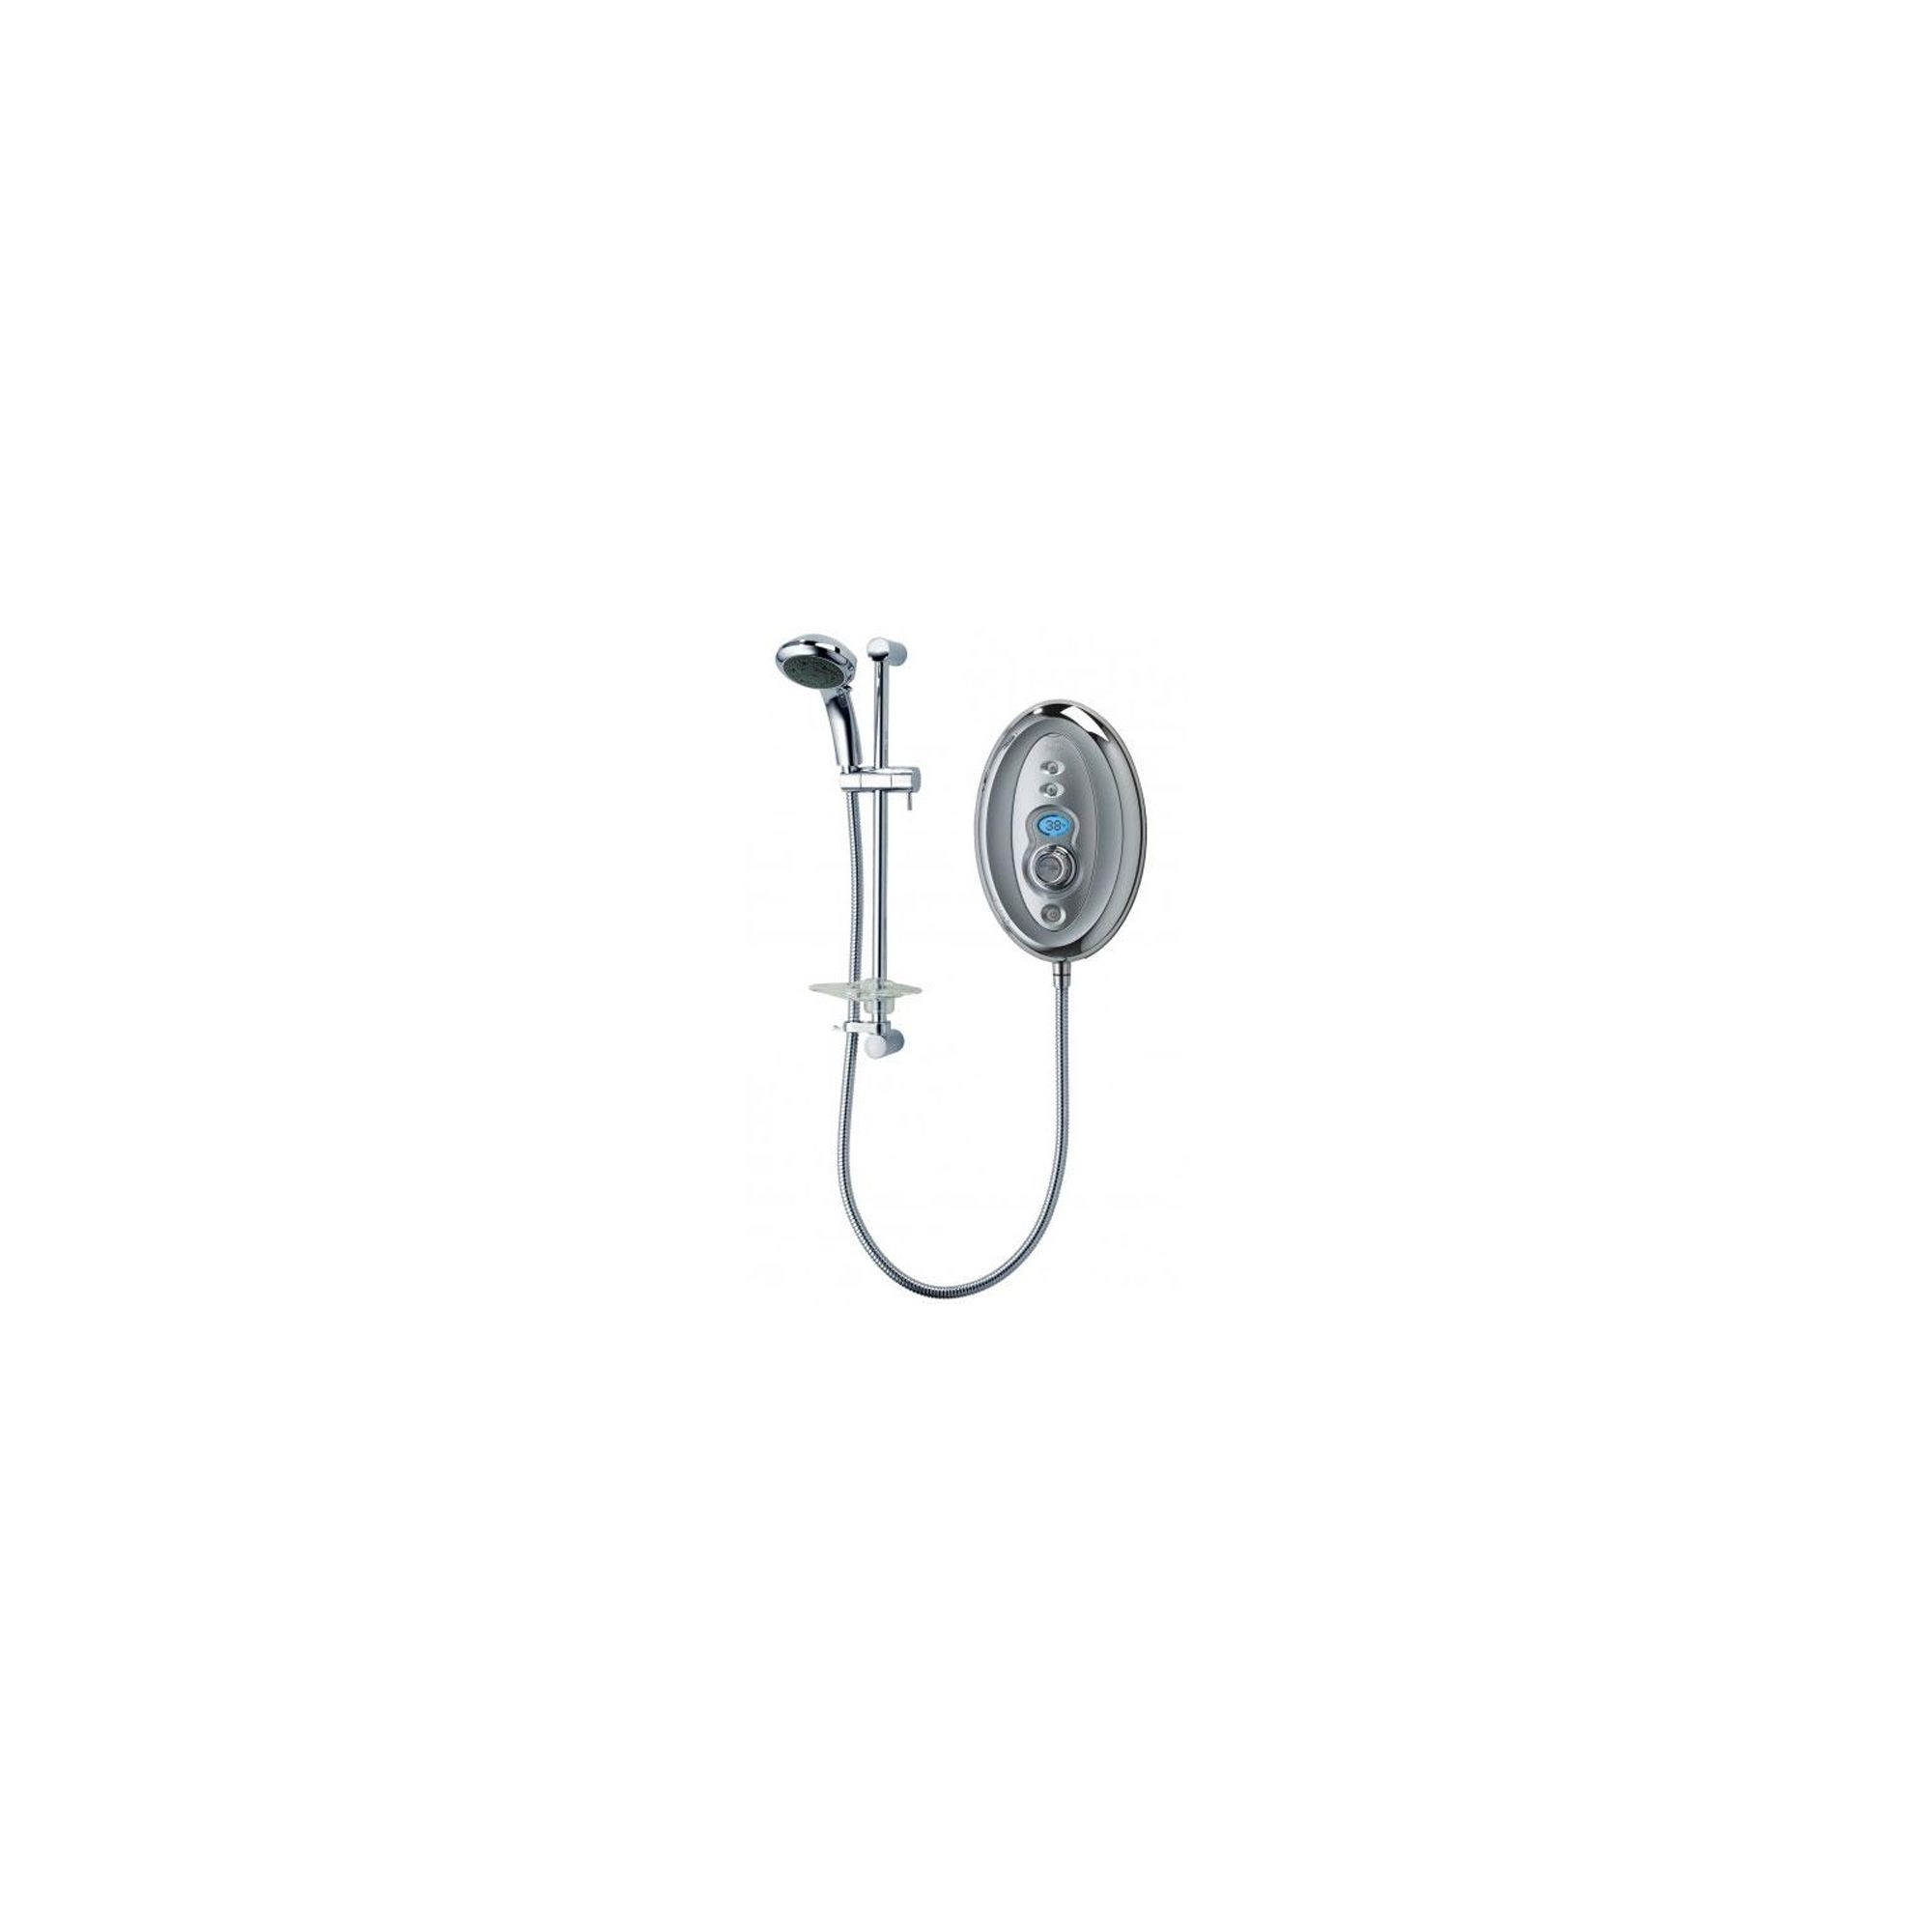 Triton Aspirante Topaz Thermostatic Electric Shower Chrome 9.5 kW at Tesco Direct